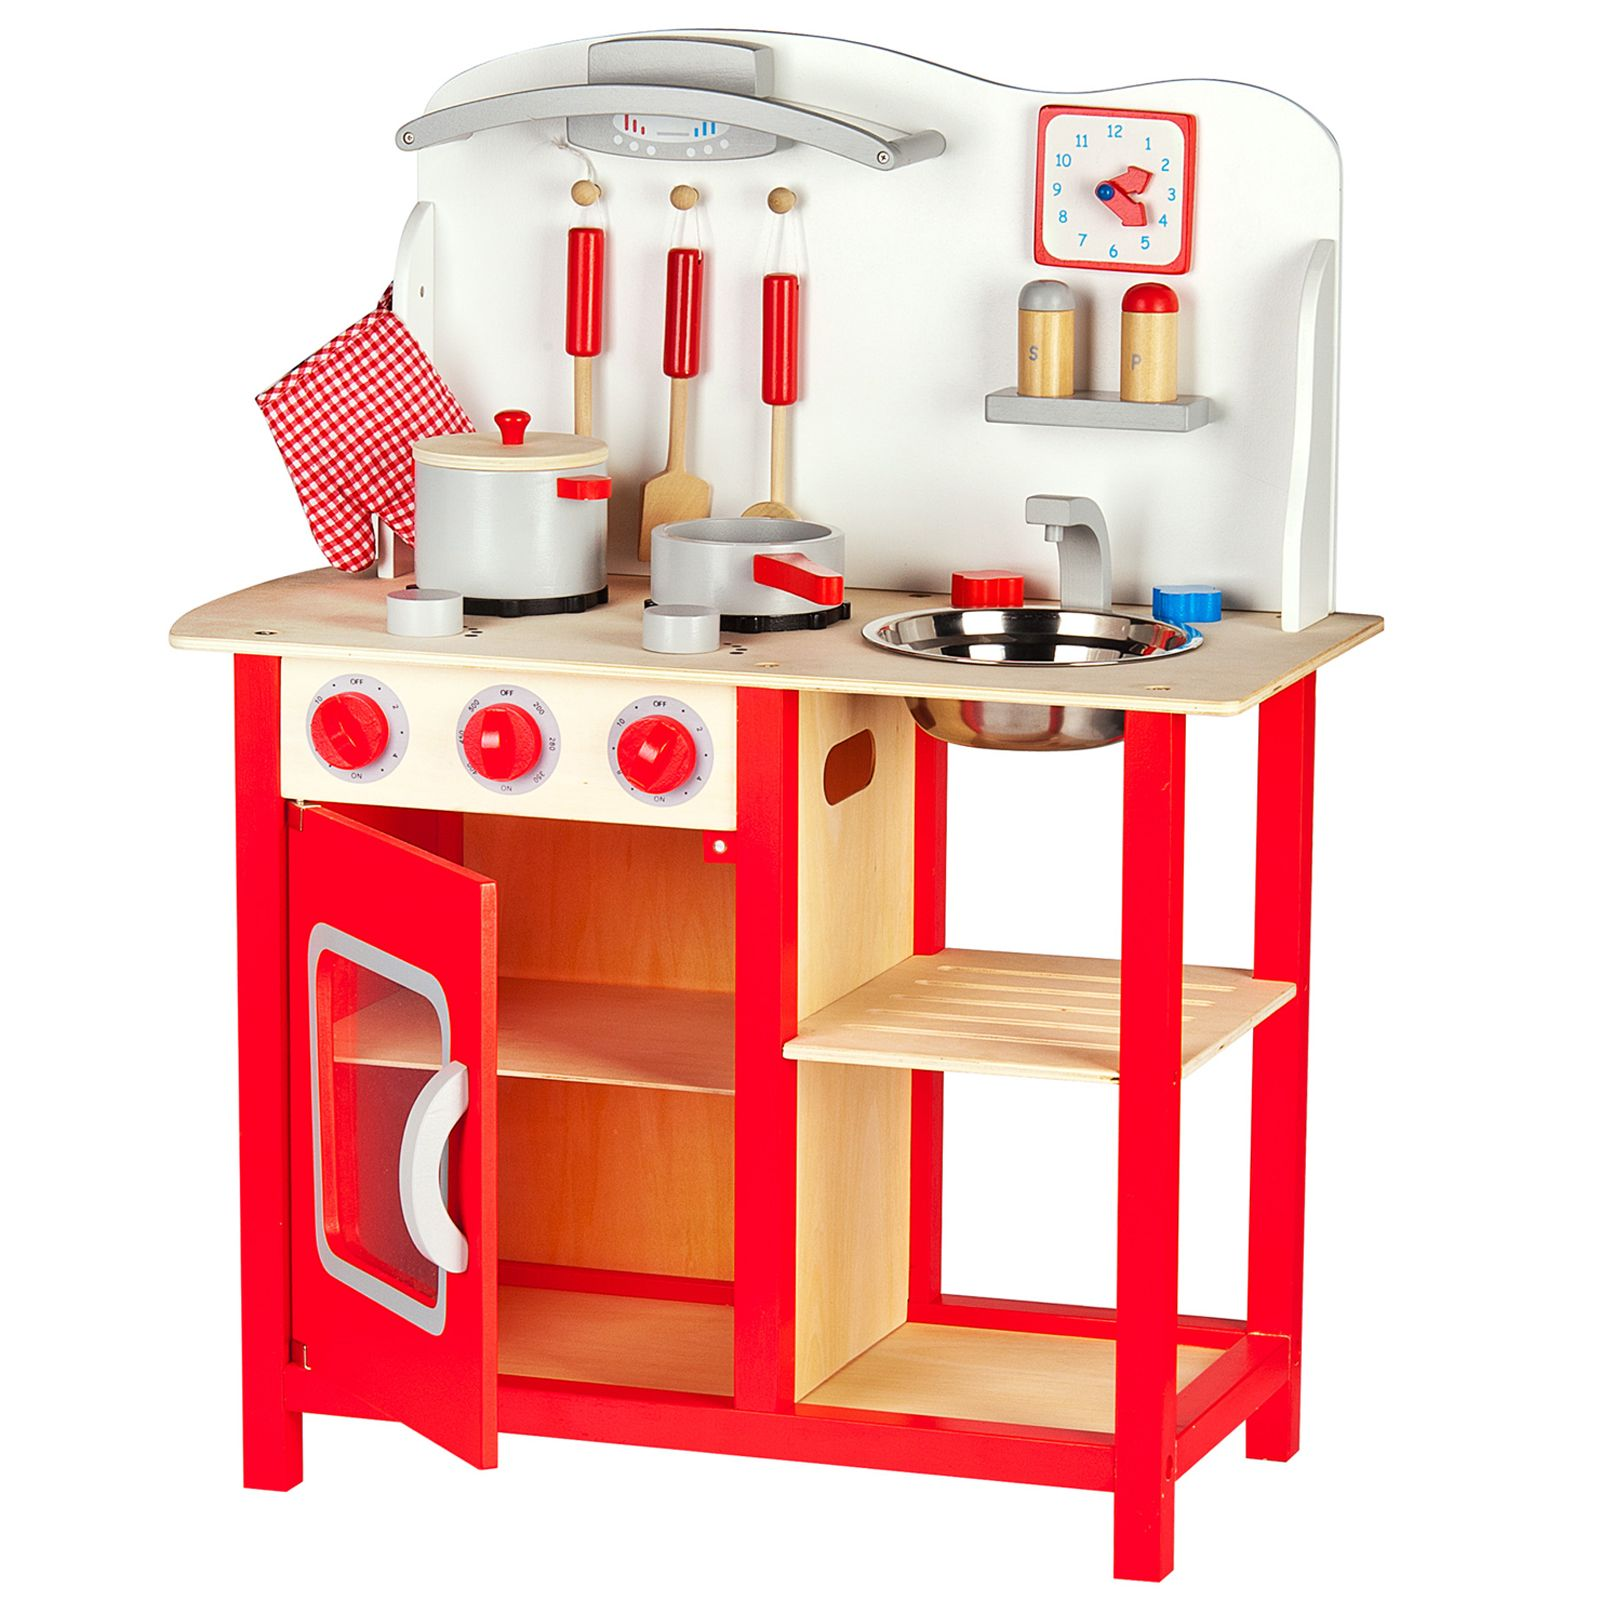 wooden kitchen accessory set leomark wooden kitchen childrens play kitchen with 1629